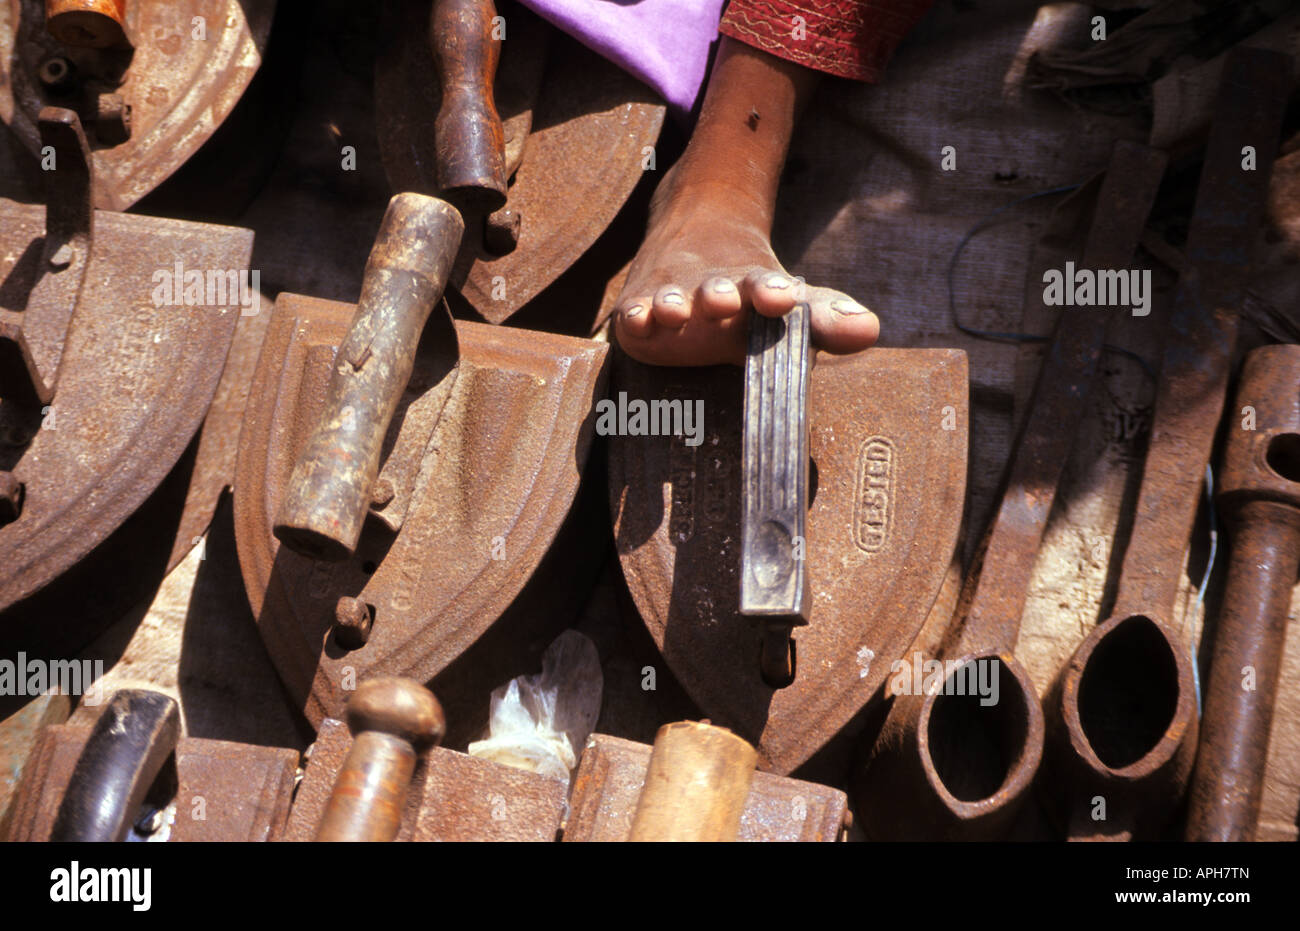 Old Irons sold in the colorful Sunday market in Ahmedabad - Stock Image